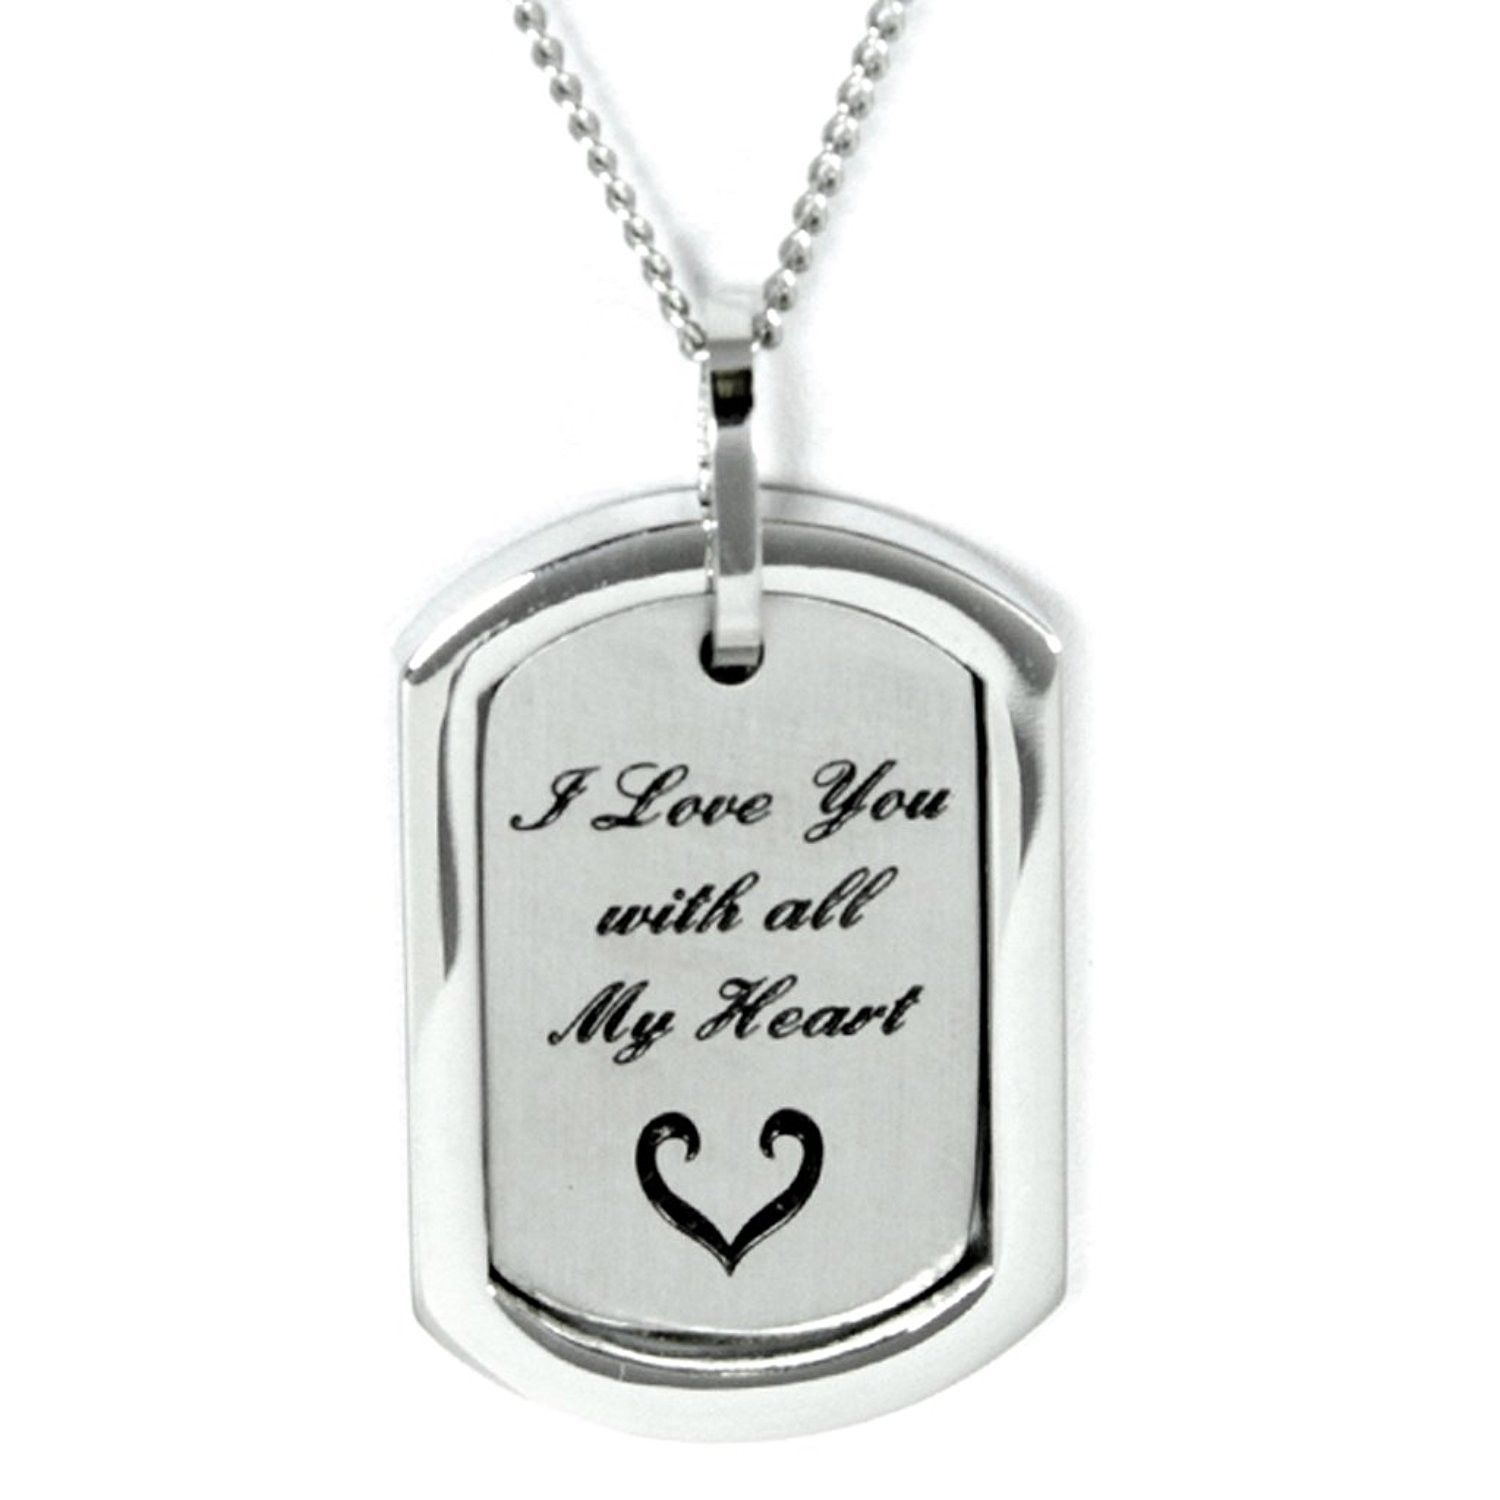 I Love You With All My Heart Pendant Necklace Stainless Steel